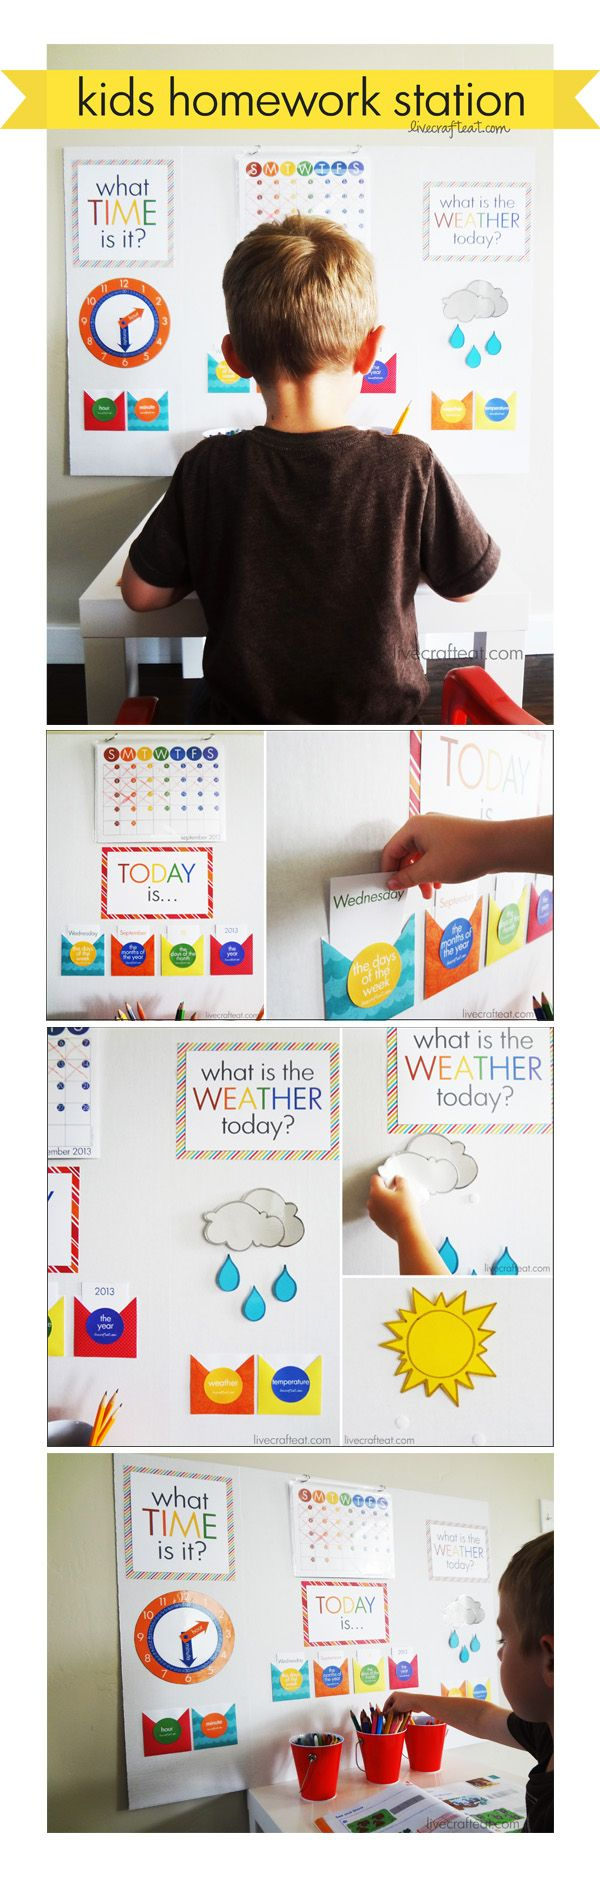 a diy homework station - help your kid focus on his schoolwork in addition to teaching him how to tell time, the calendar, and identify different types of weather. and don't forget the free printables so you can make your own!! :) | www.livecrafteat.com